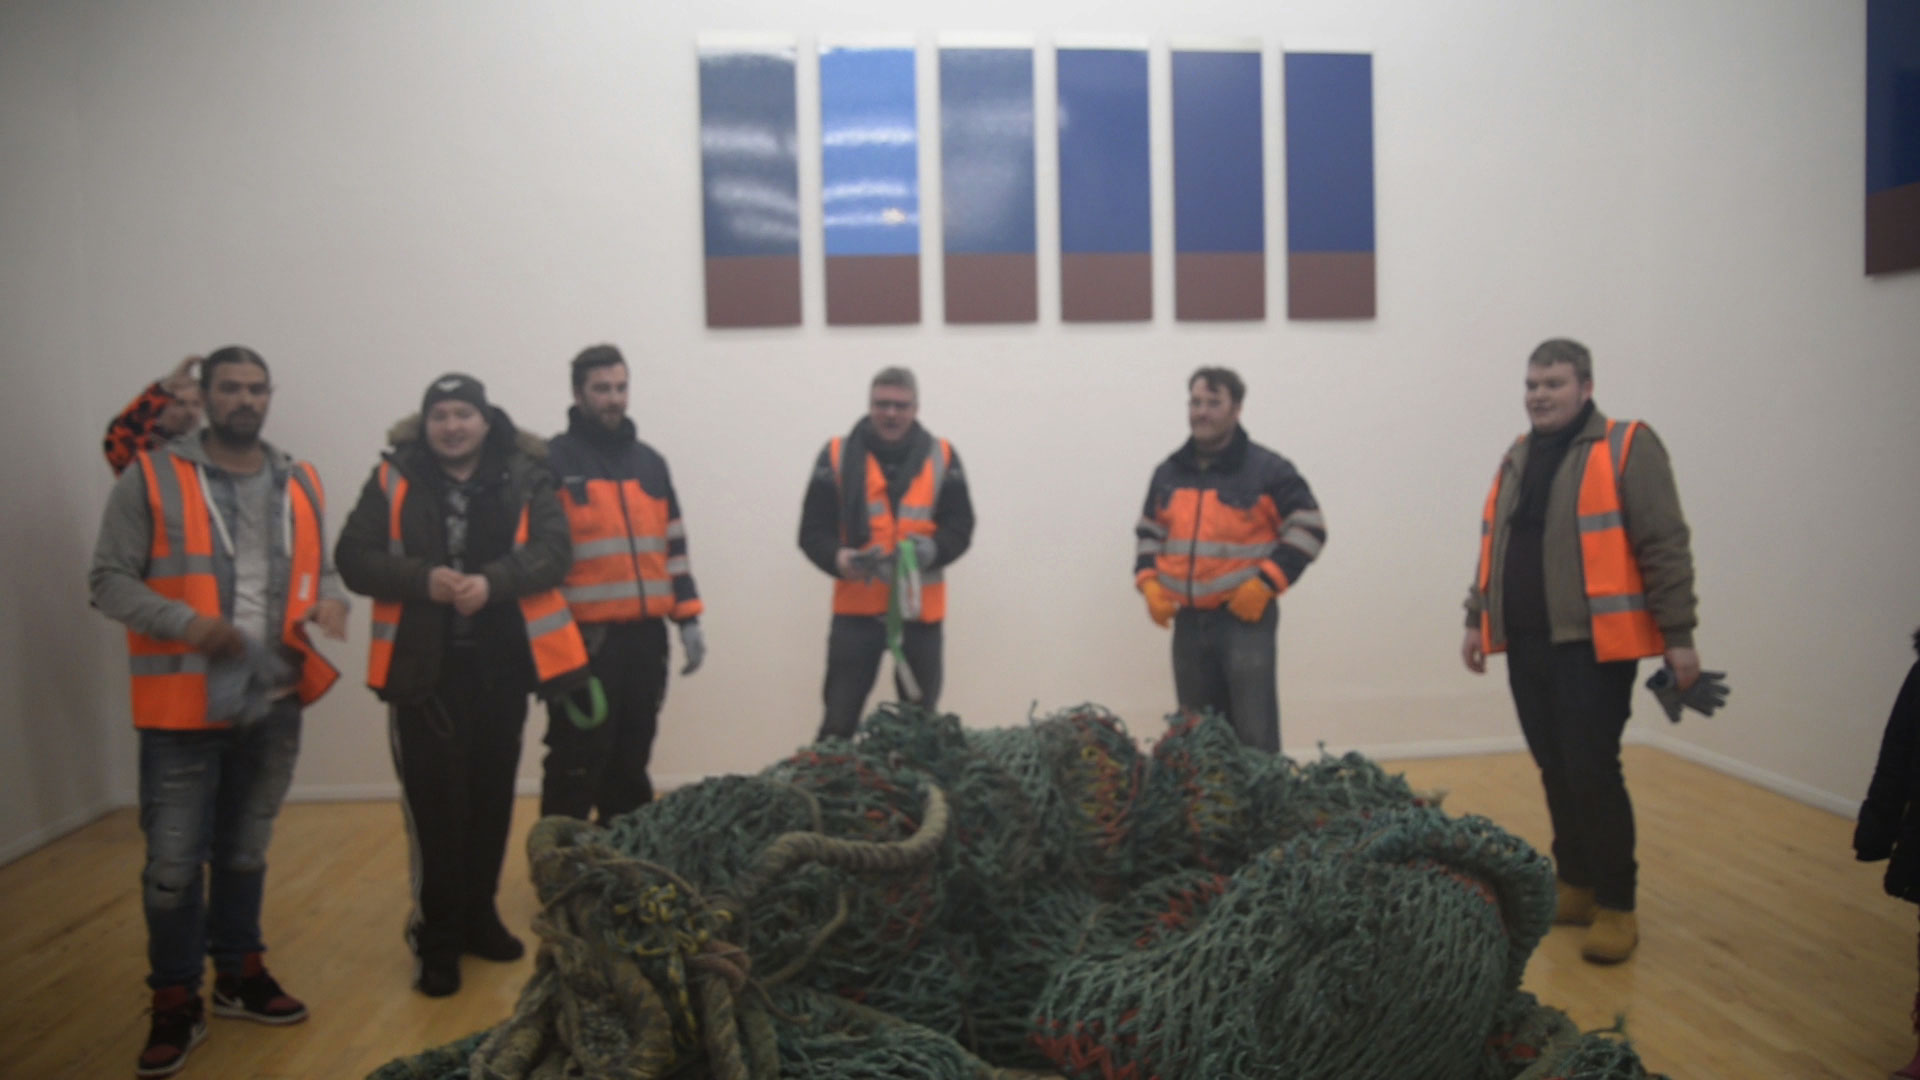 Still from video documentation of dock worker performance.